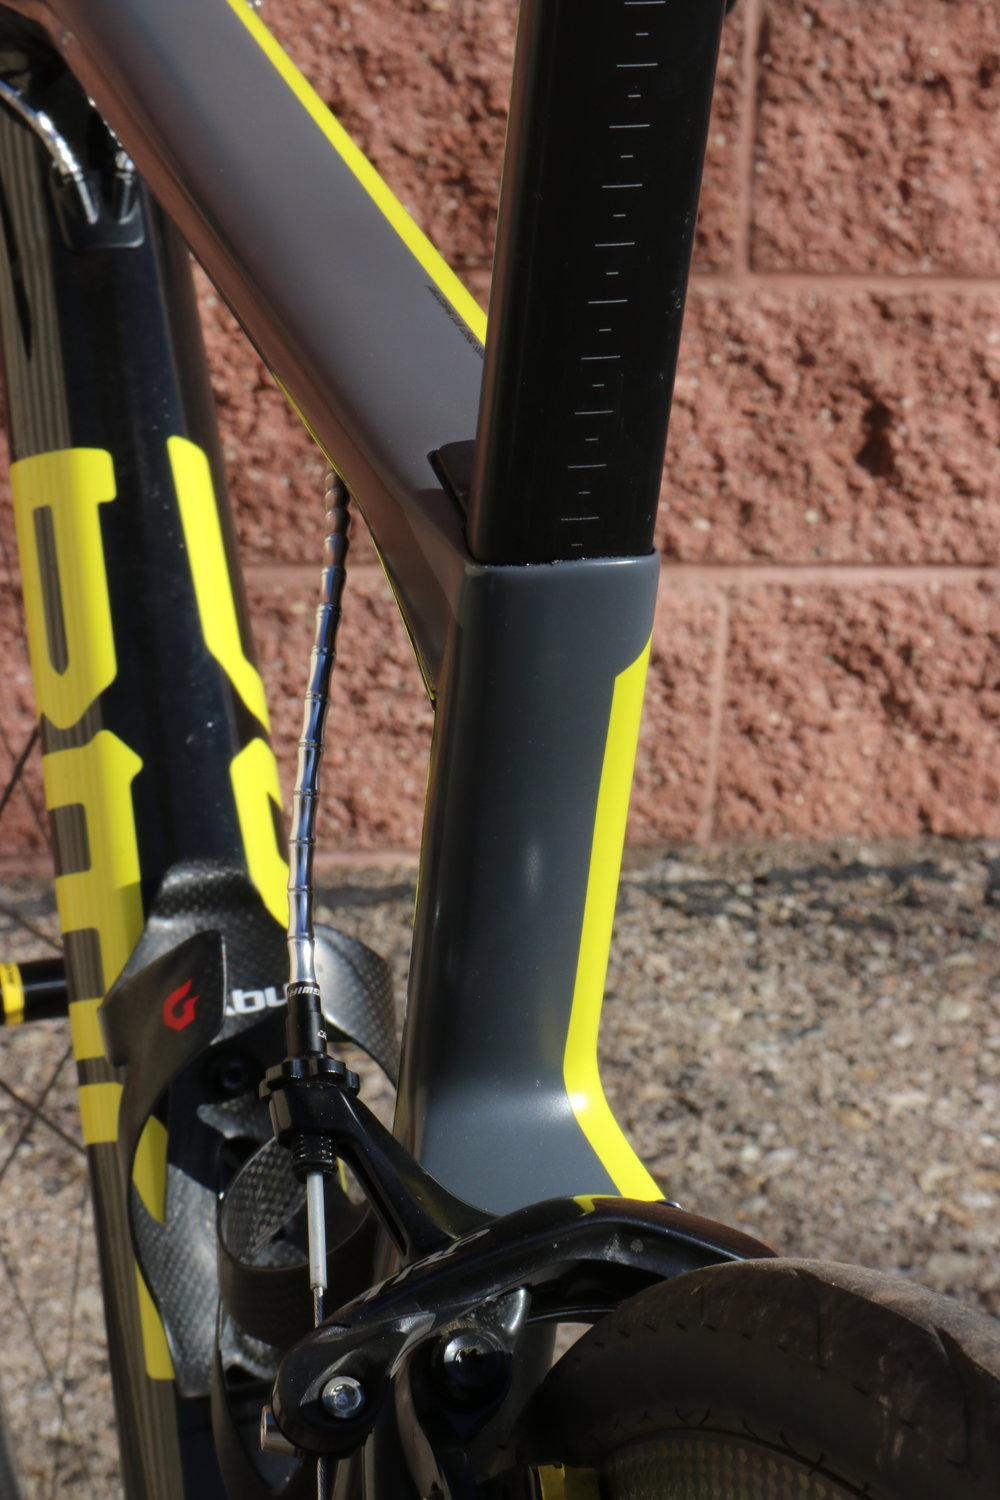 A flat back seat post helps deflect the vibration and dampen it before it reaches the rider.